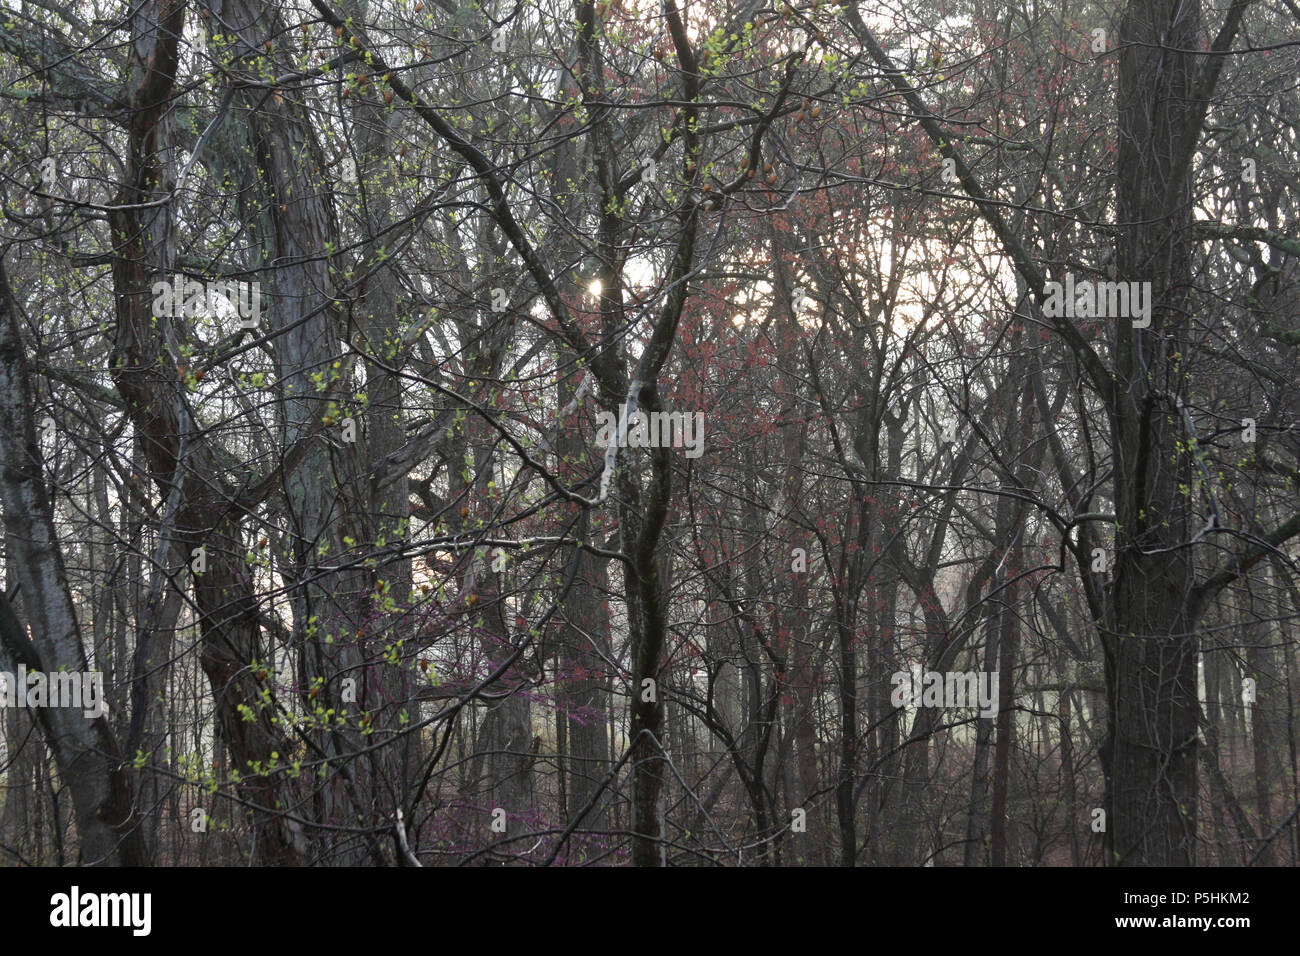 View of woods in early spring, with bare trees and first flowering branches - Stock Image